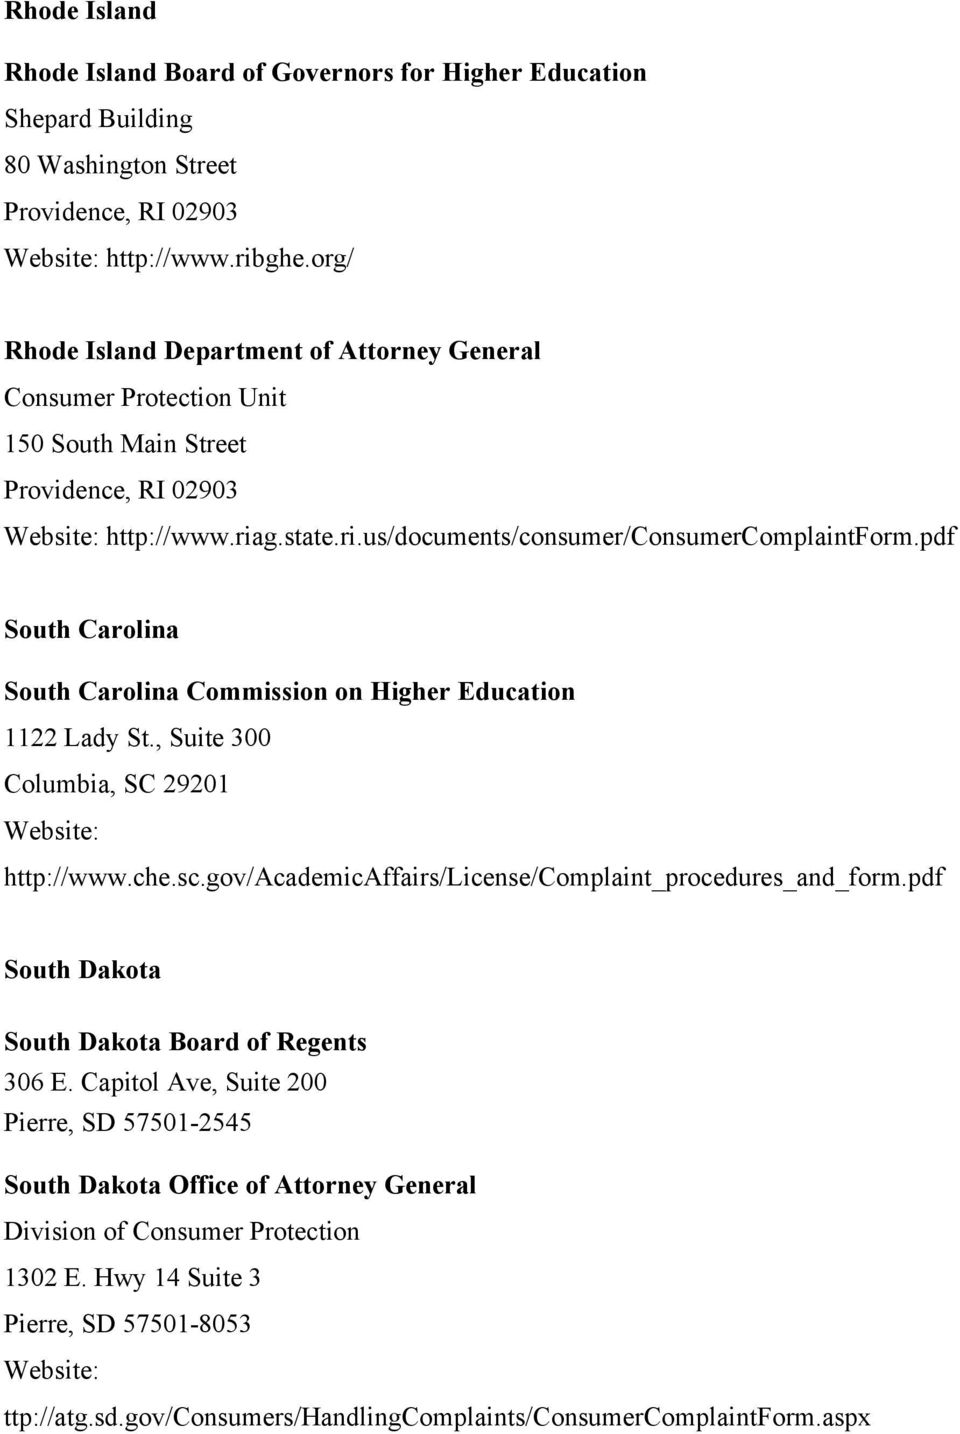 pdf South Carolina South Carolina Commission on Higher Education 1122 Lady St., Suite 300 Columbia, SC 29201 http://www.che.sc.gov/academicaffairs/license/complaint_procedures_and_form.